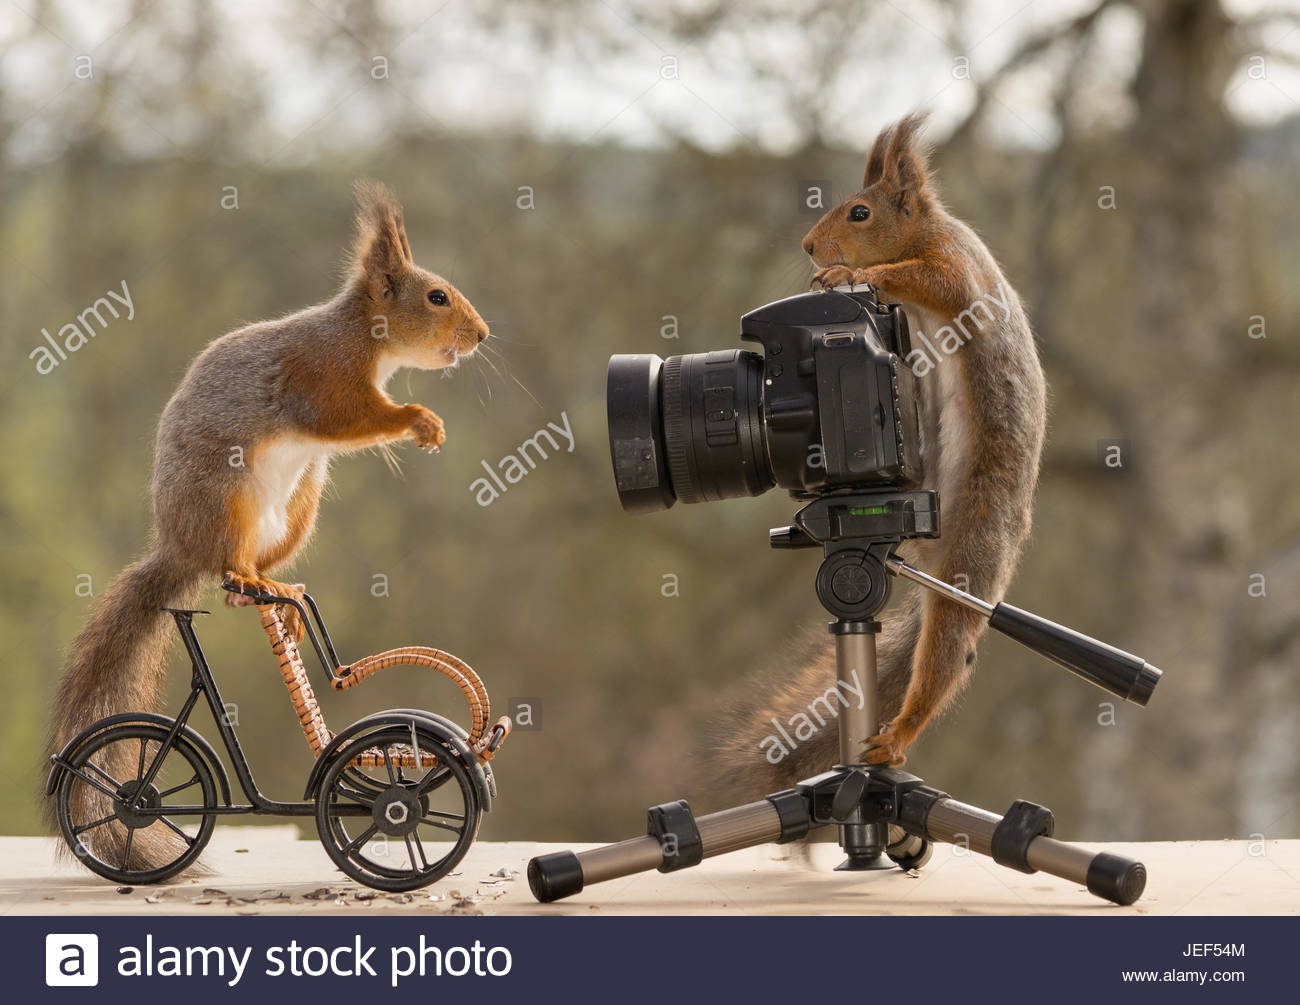 squirrel on bike looking at a red squirrel who is standing behind a camera - Stock Image